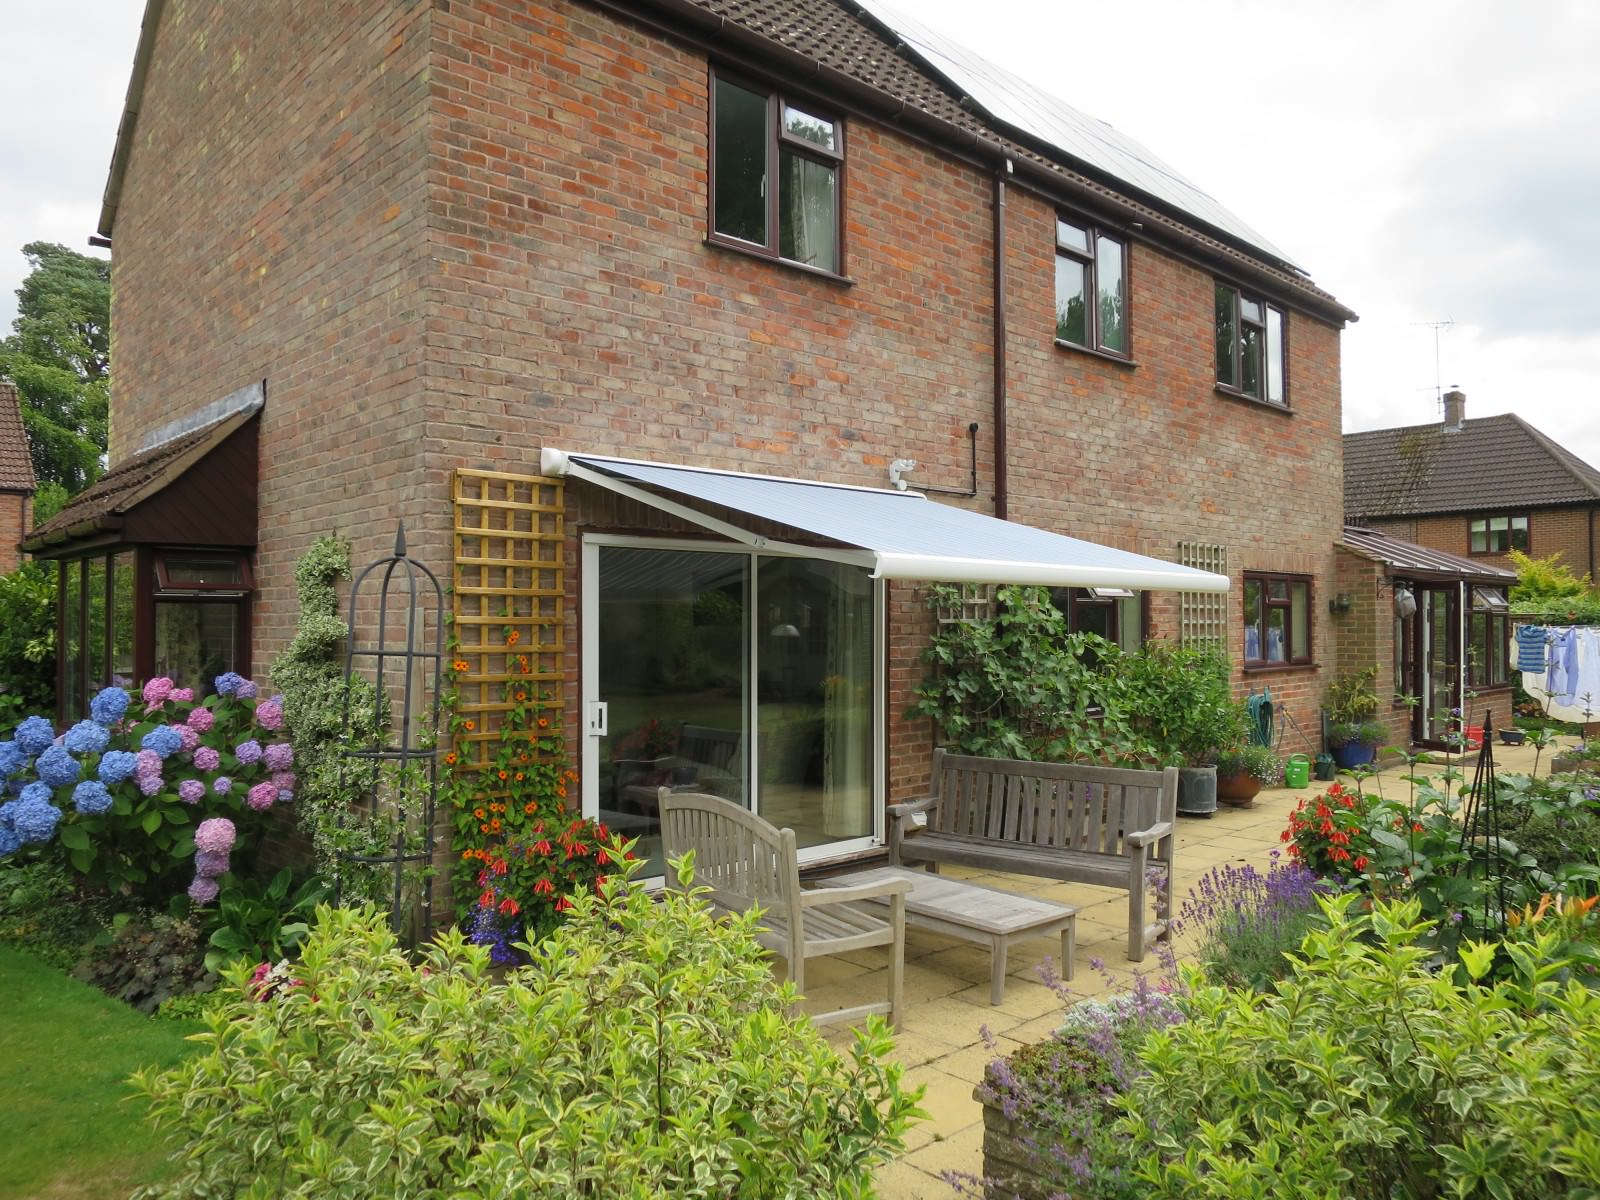 Garden Awning Fitted in Farnham - Shuttersouth